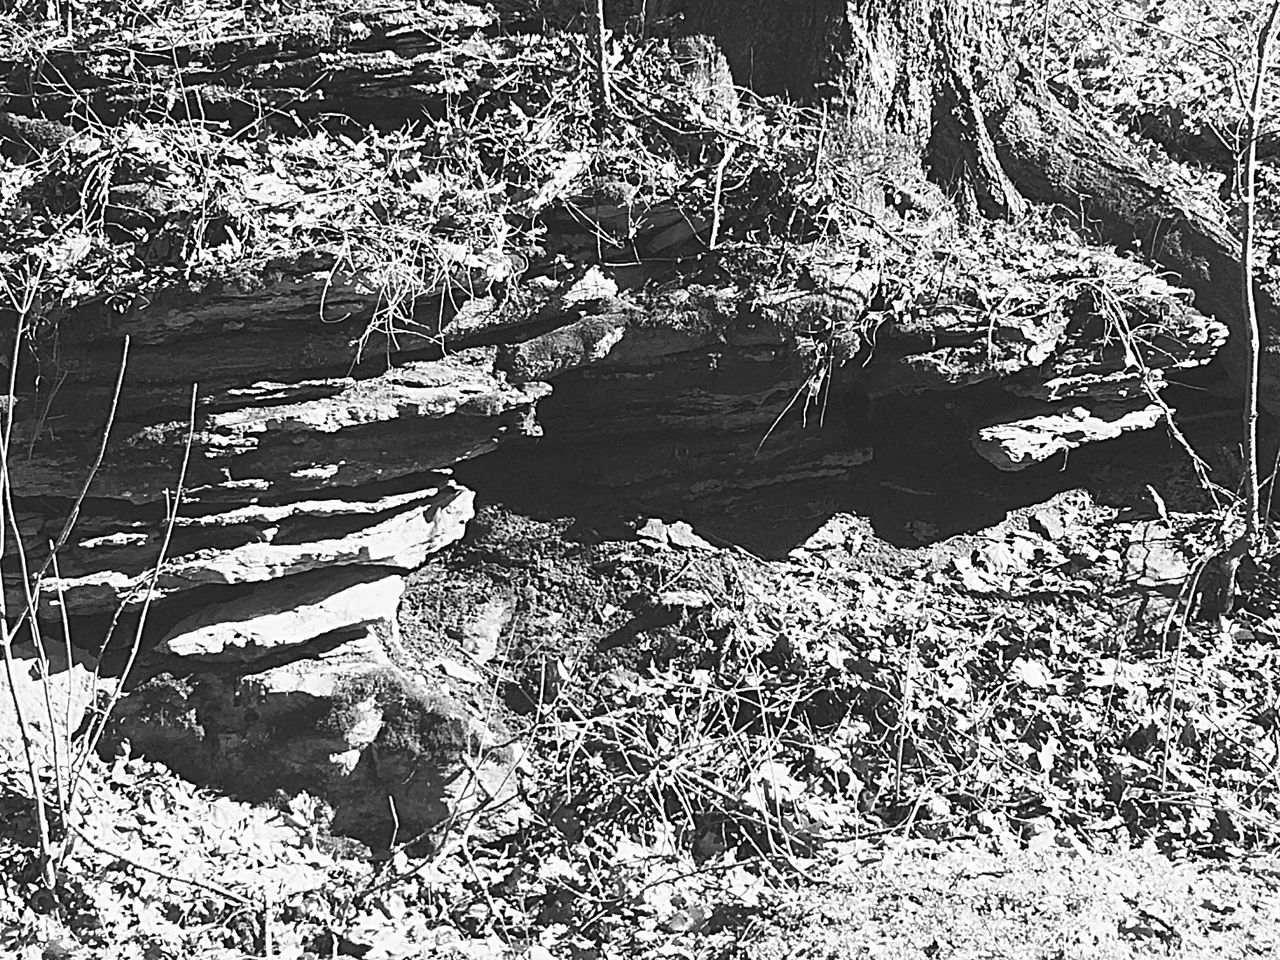 Light And Shadow Rock Formation Rocks Backroads Trees Nature_collection Countryside Light And Shadows Eyemnaturelover EyeEm Nature Lover Nature Mothernature Kentucky  Backroad Country Life Shadows Blackandwhite Fortheloveofblackandwhite